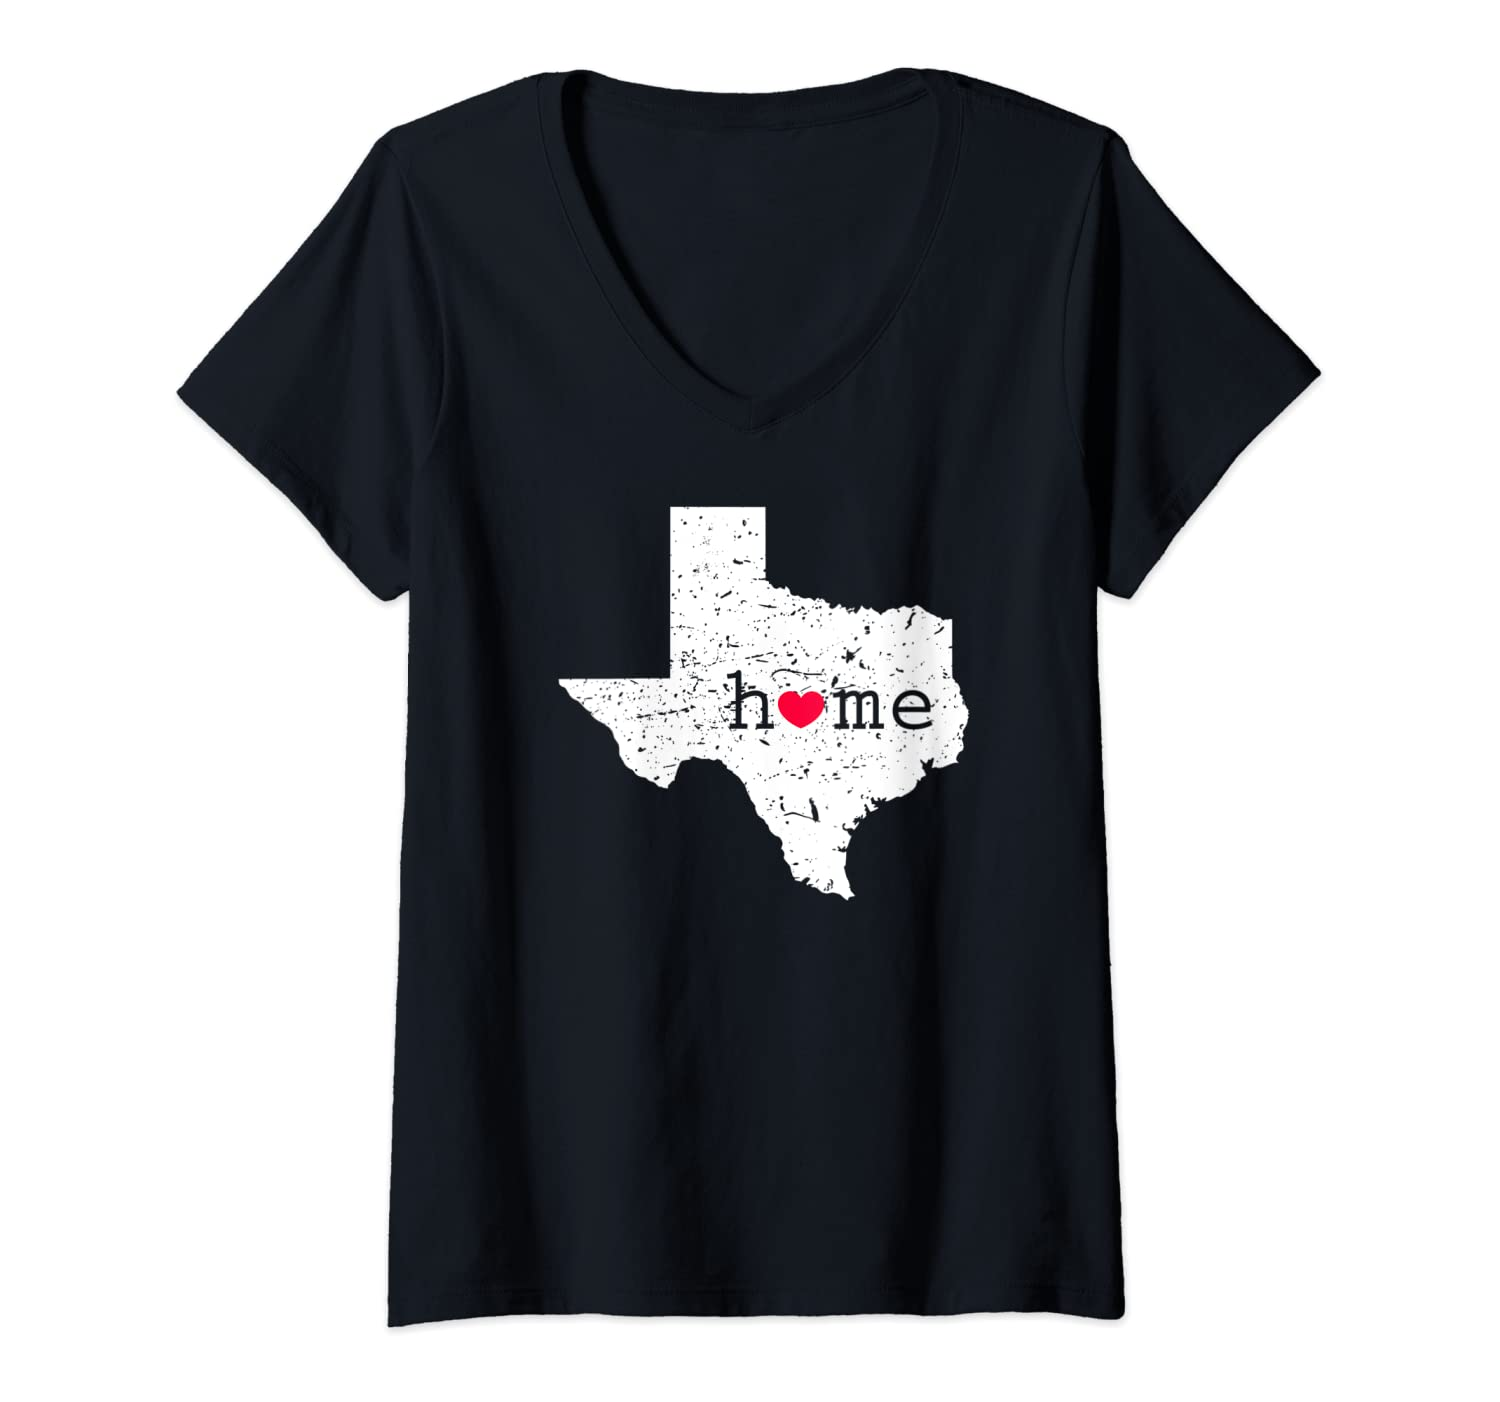 Womens Texas Home T Shirt Distressed TX State Map with Heart Gift V-Neck T-Shirt